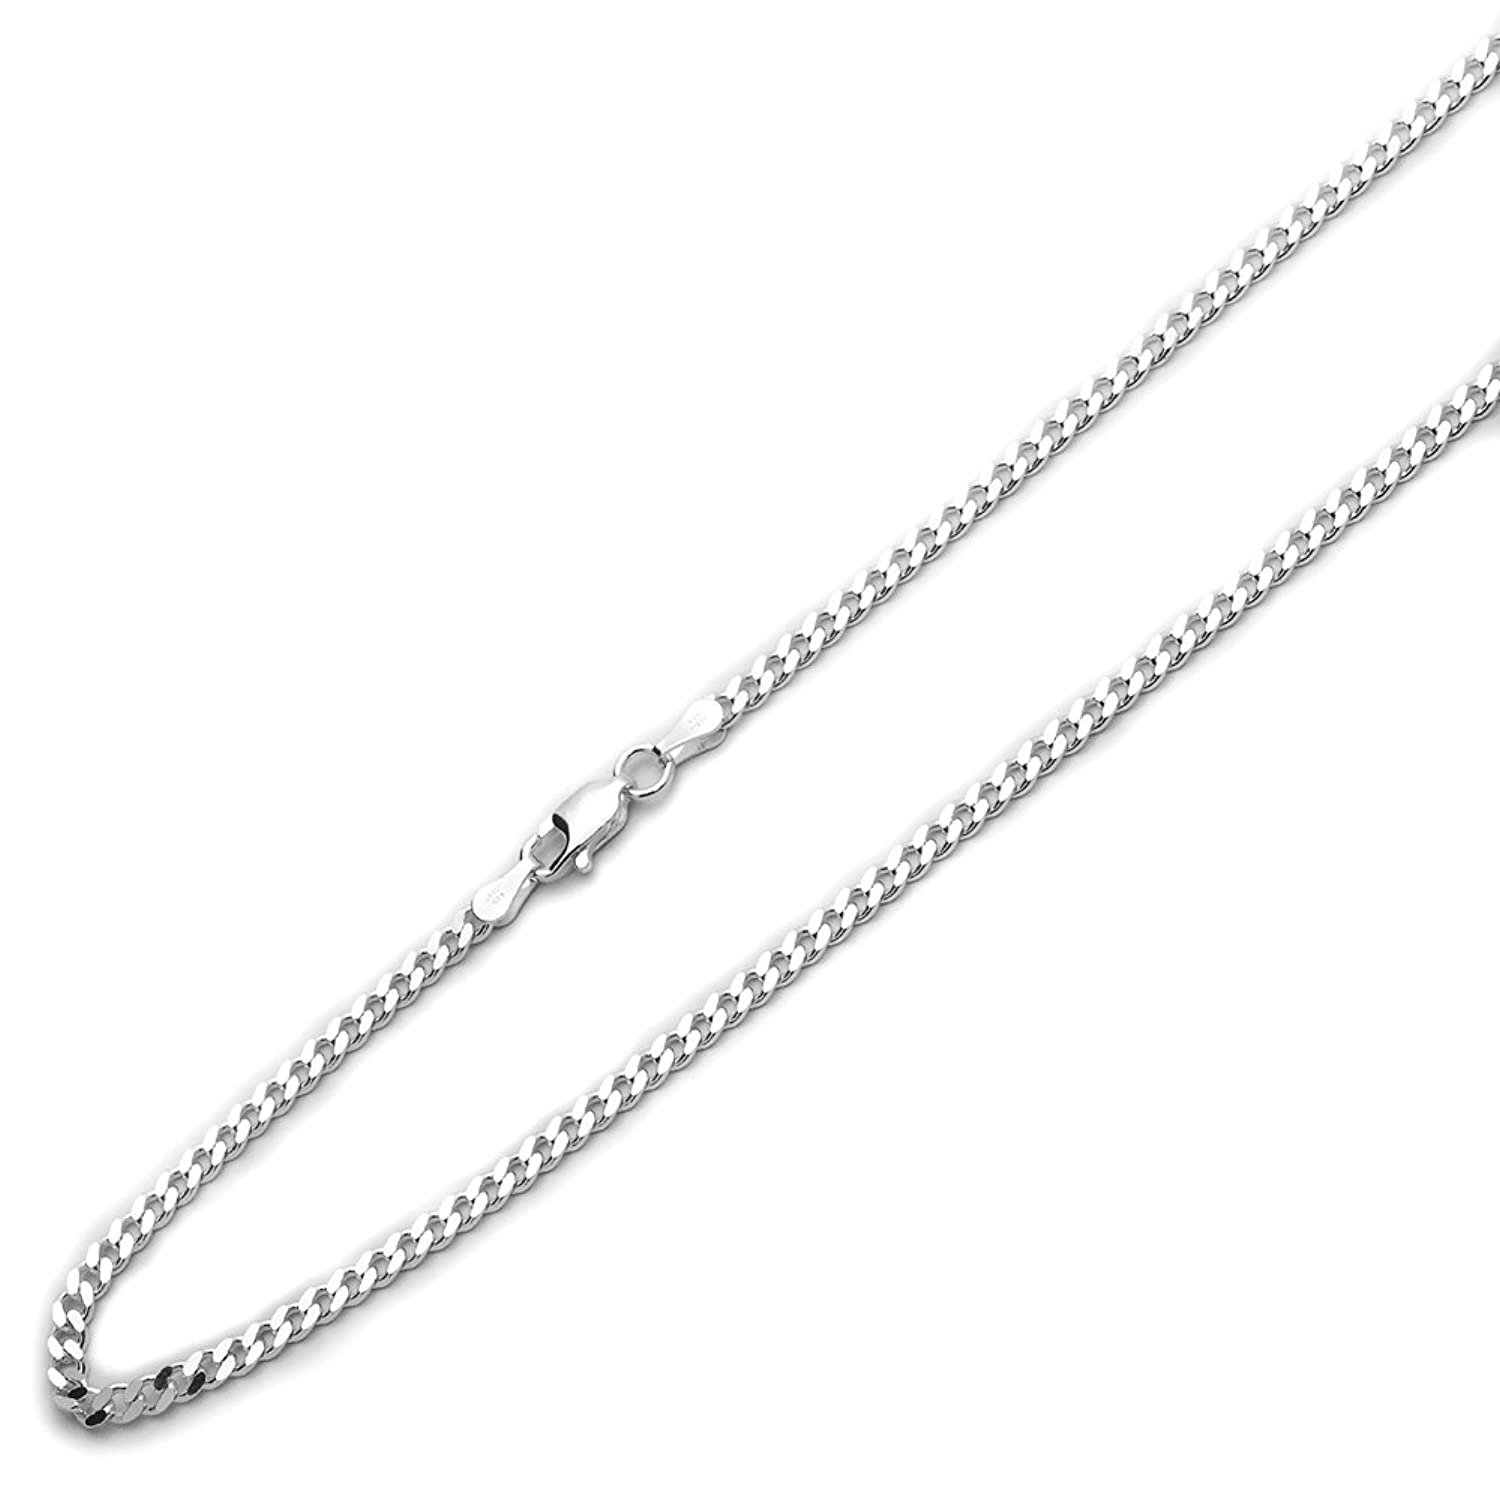 inch and to solid super sterling chain heavy inches diamond silver rope diameter cut jewellery